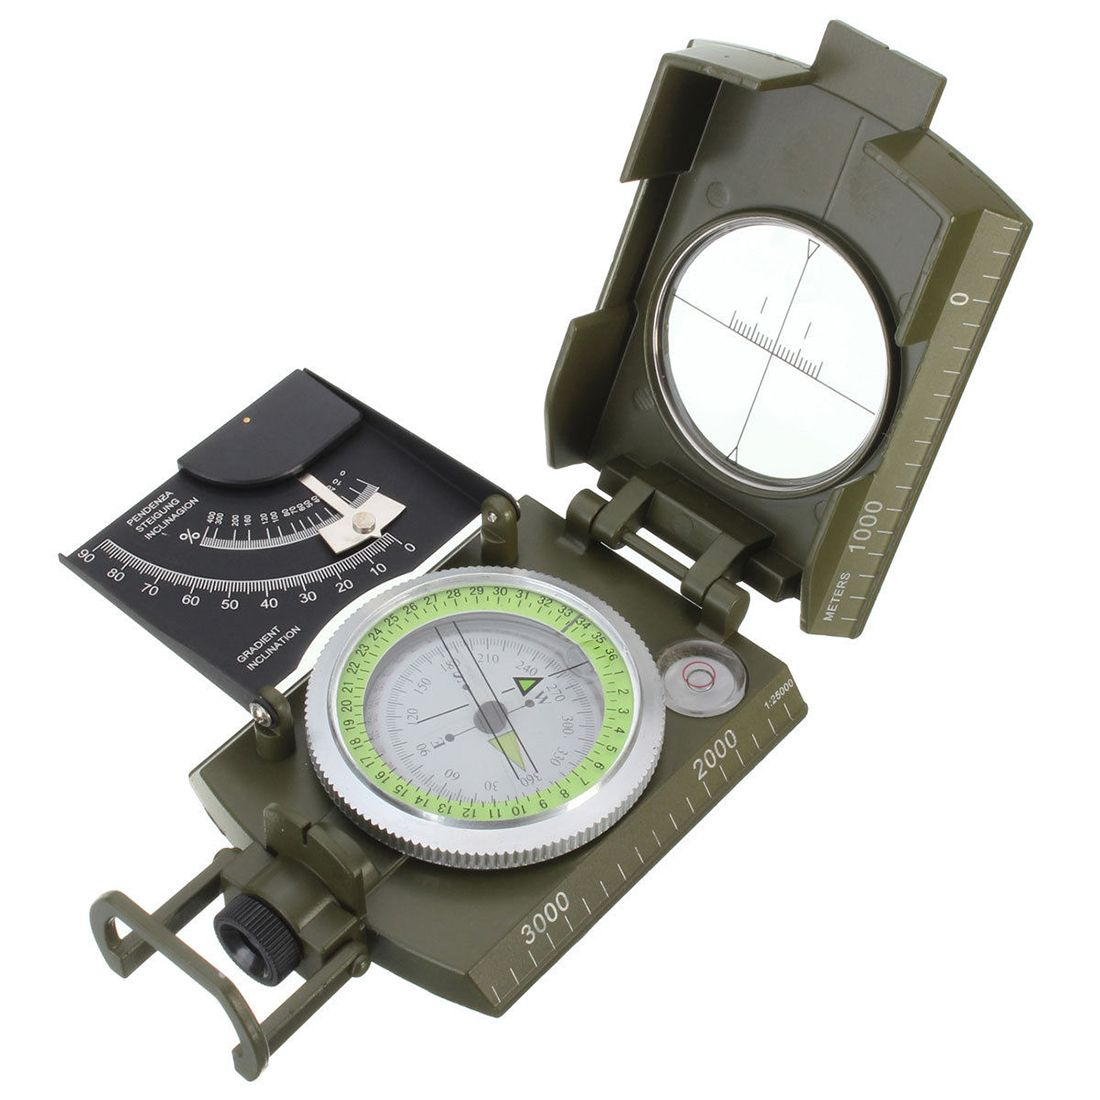 New Professional Military Army Metal Sighting Compass clinometer Camping